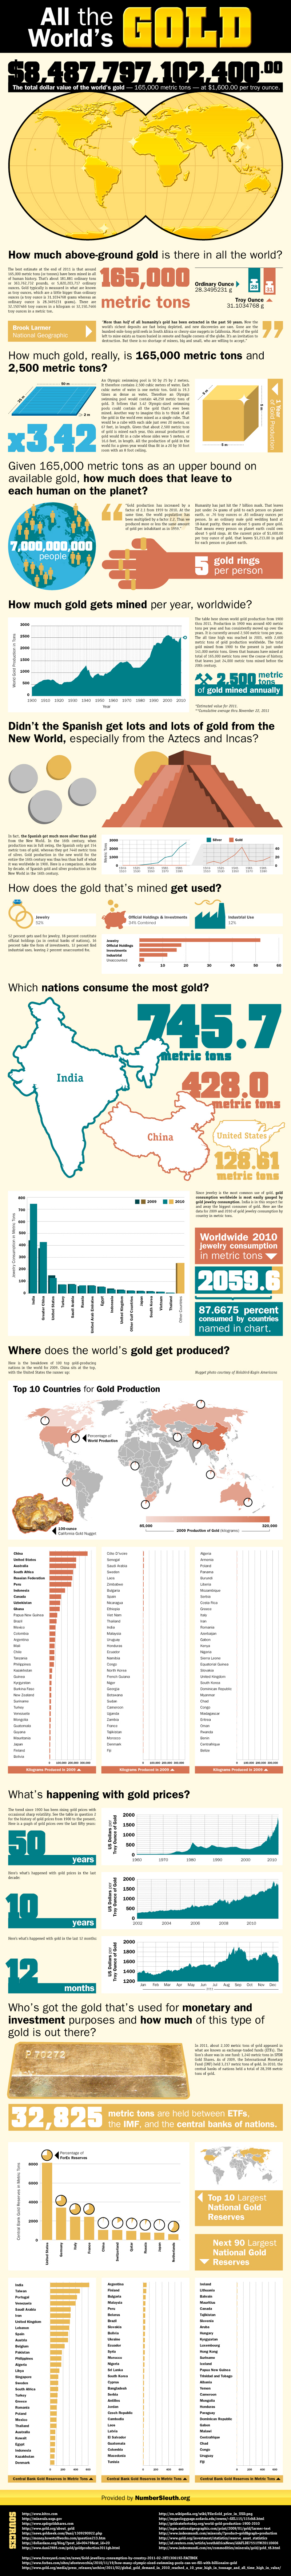 Gold Industry Facts and Statistics